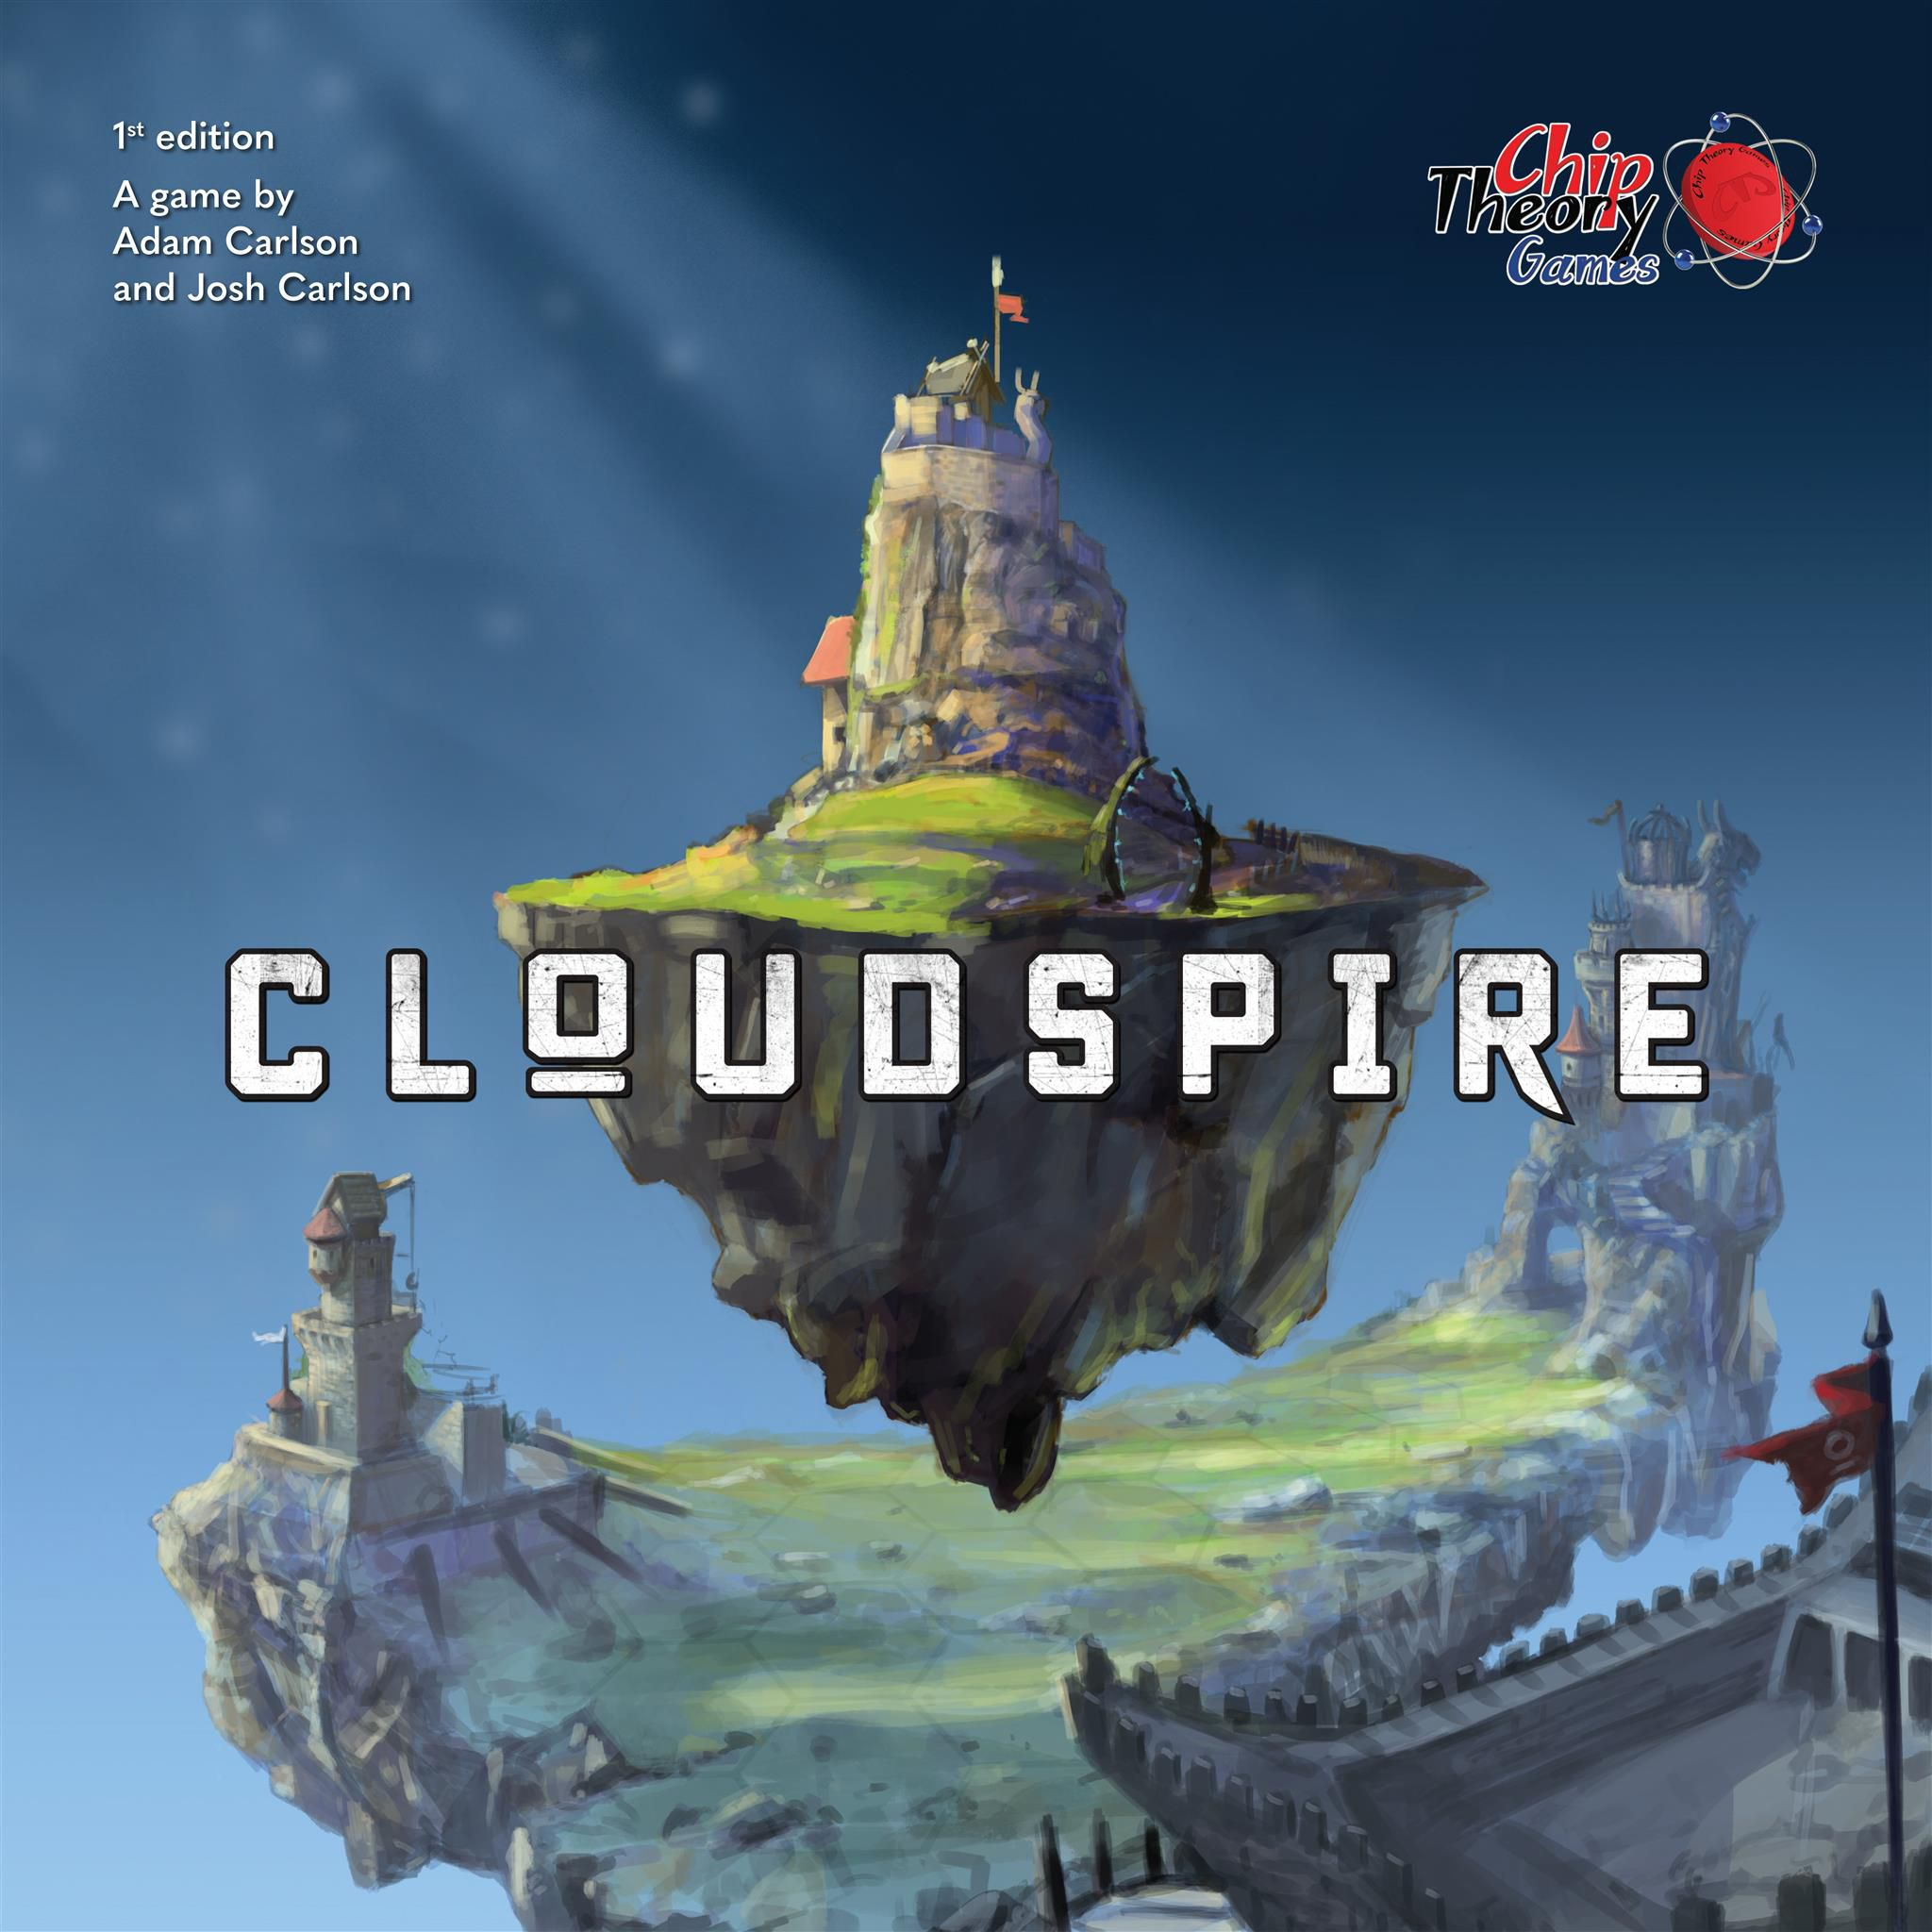 The box for the game Cloudspire